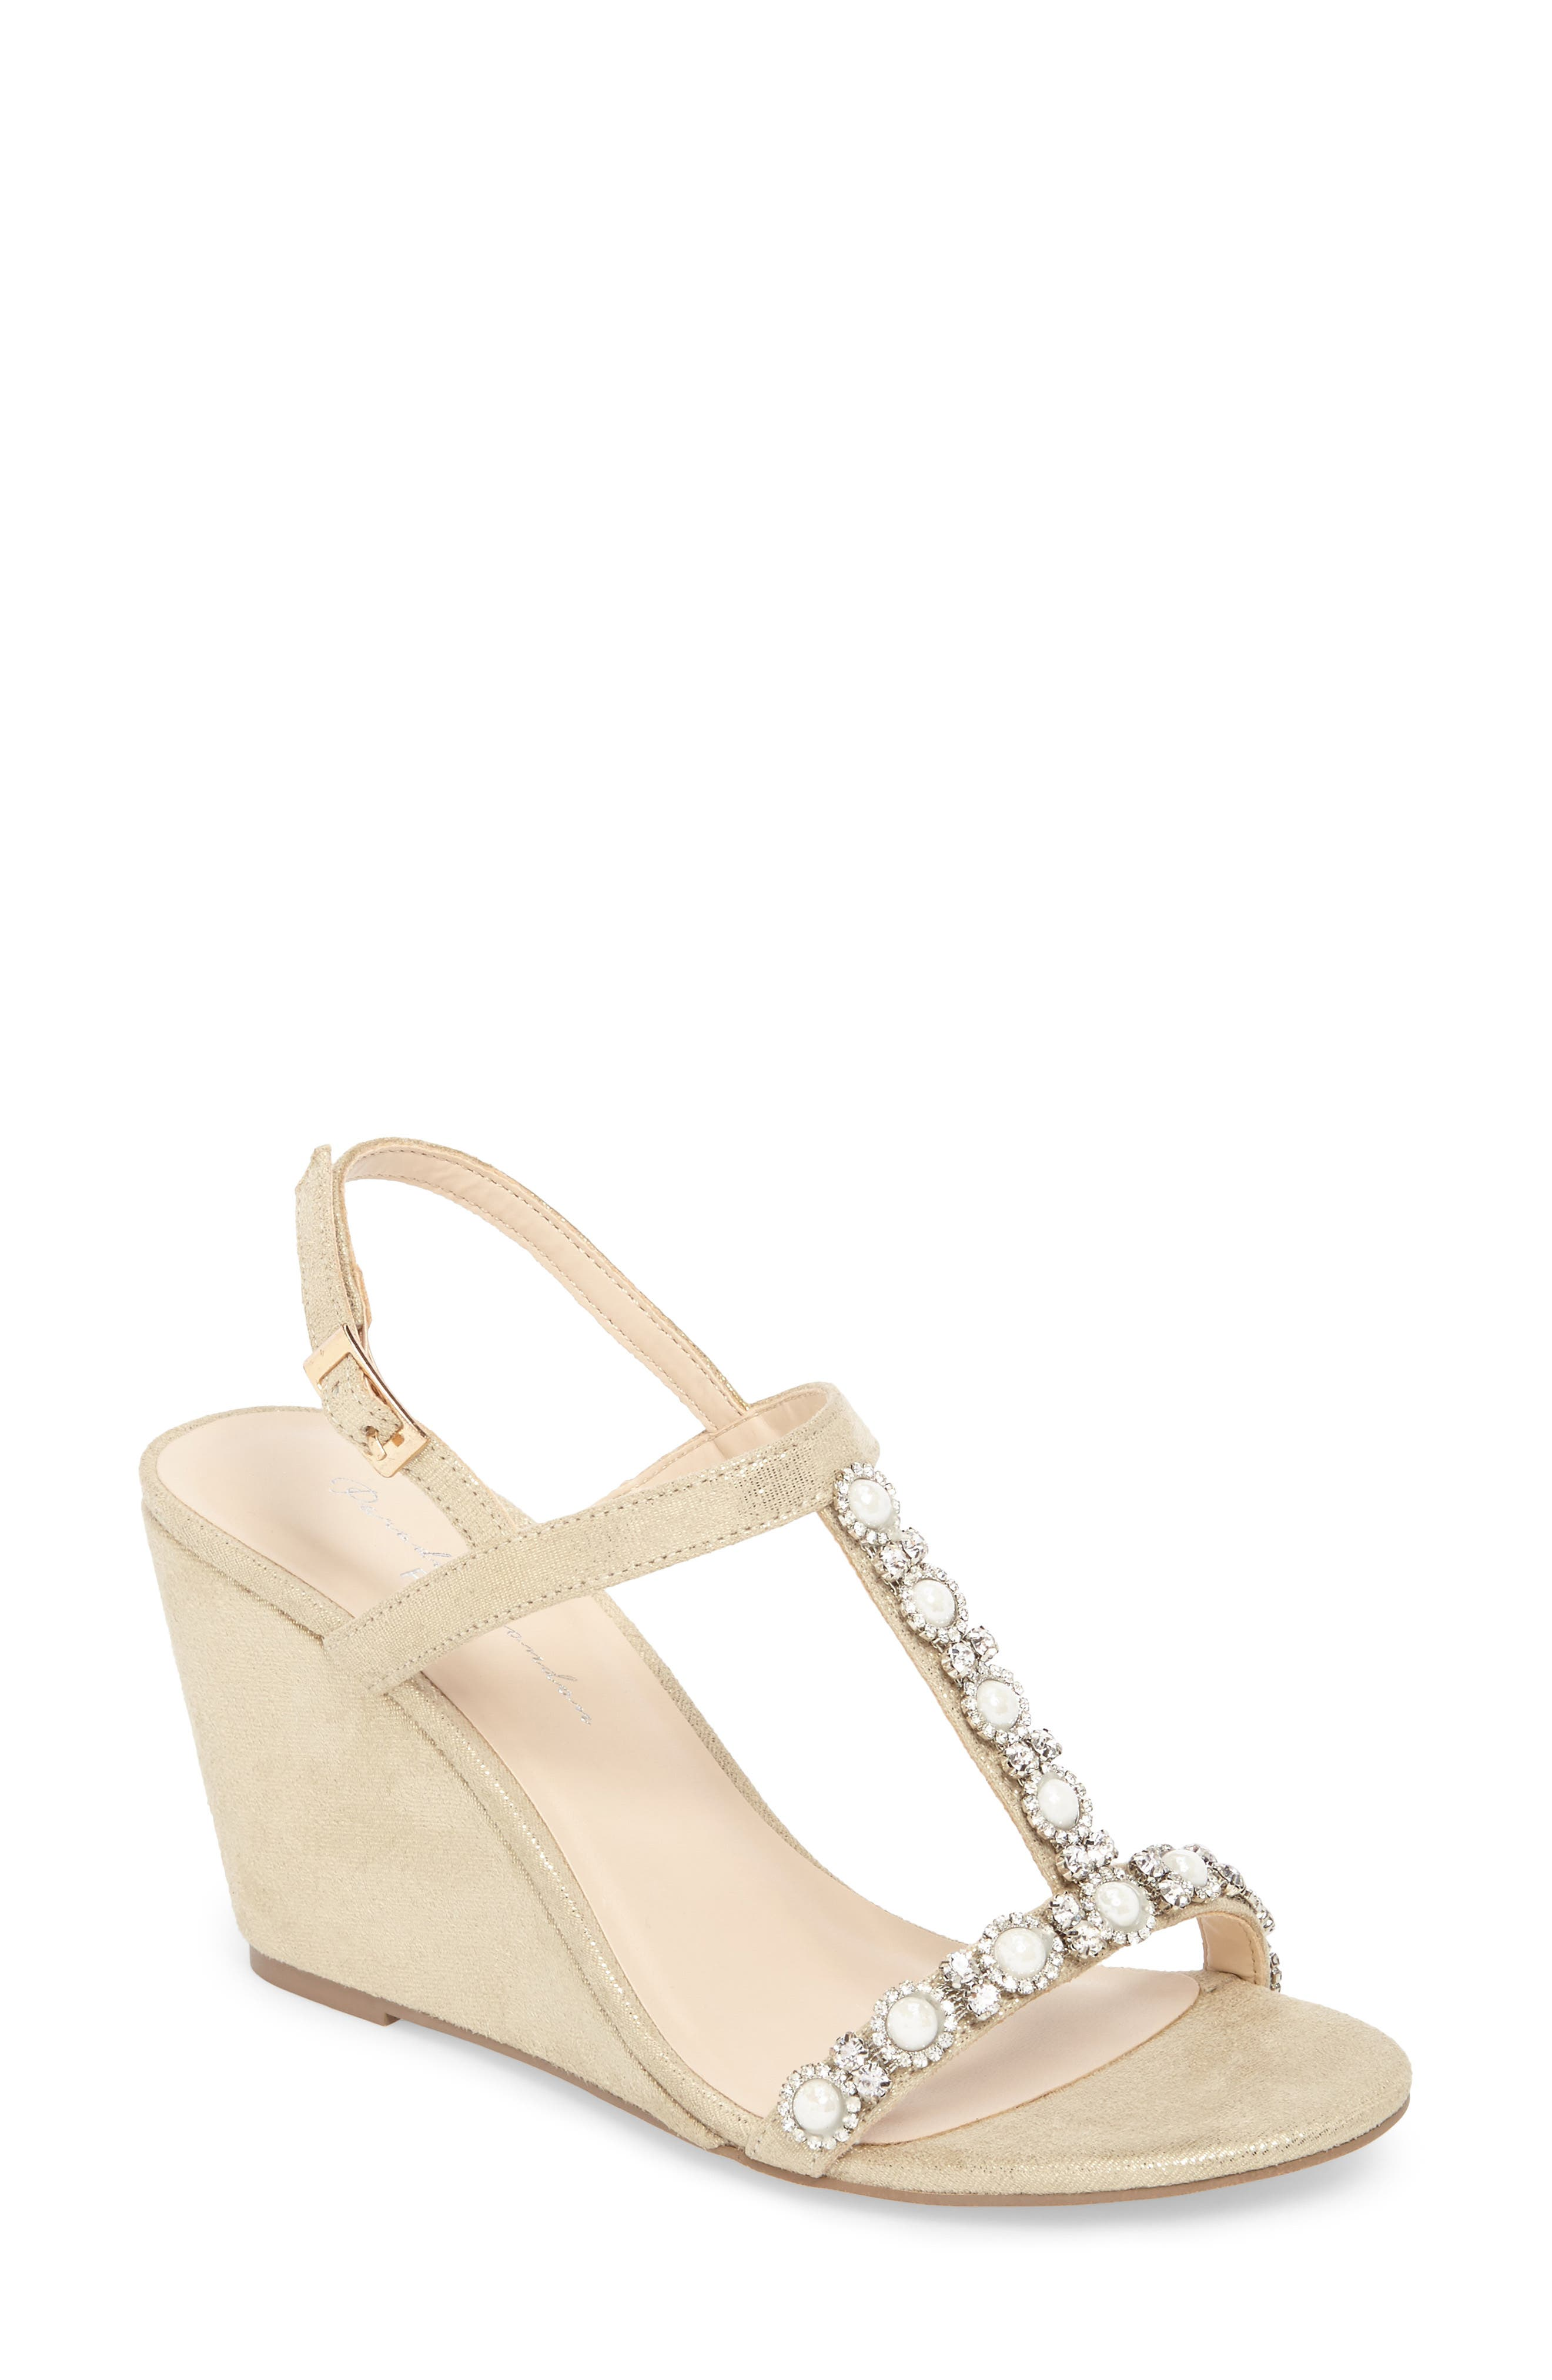 pink paradox london Kiana Embellished Wedge Sandal (Women)